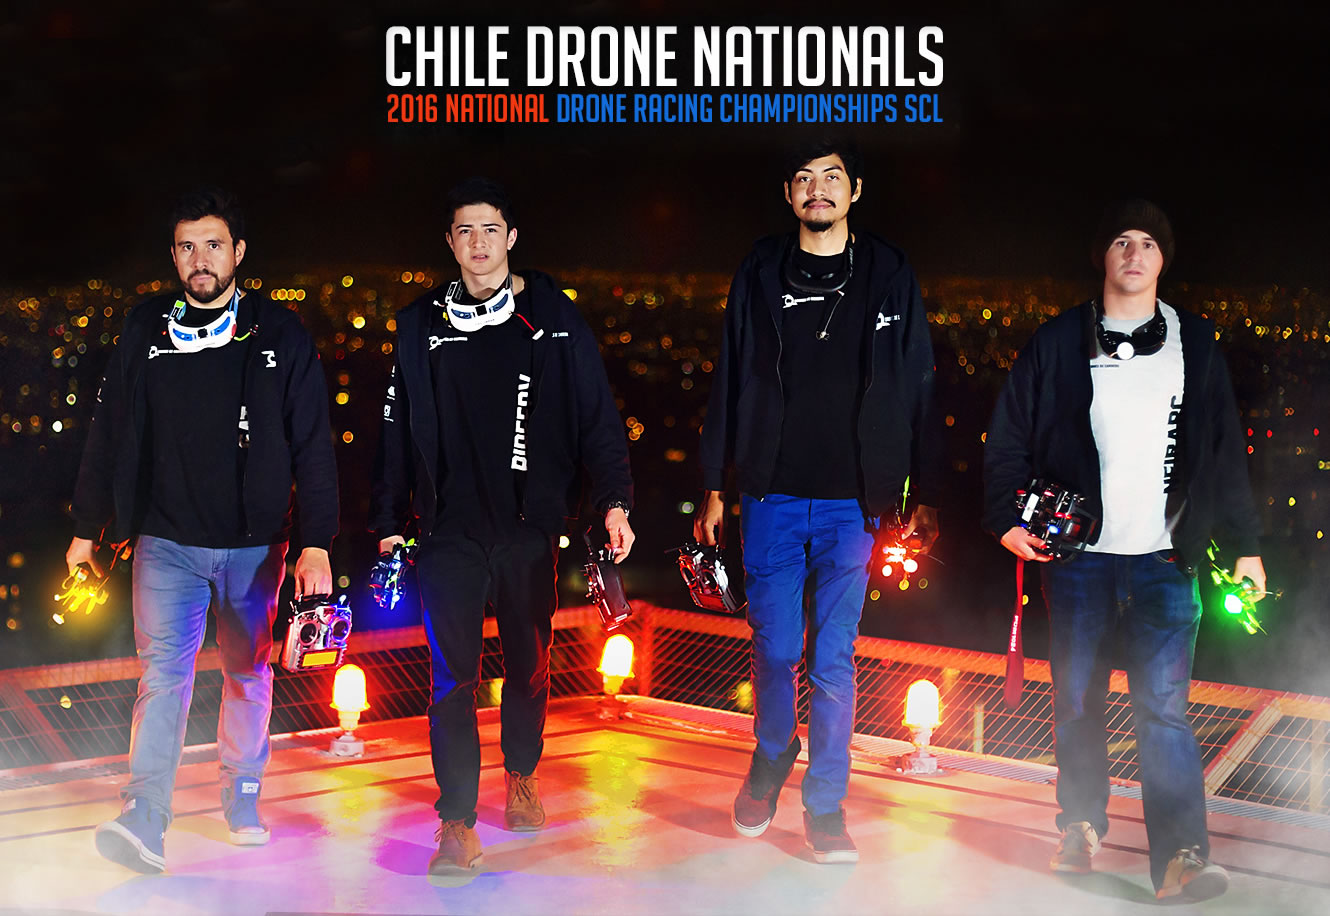 Chile Drone Nationals 2016